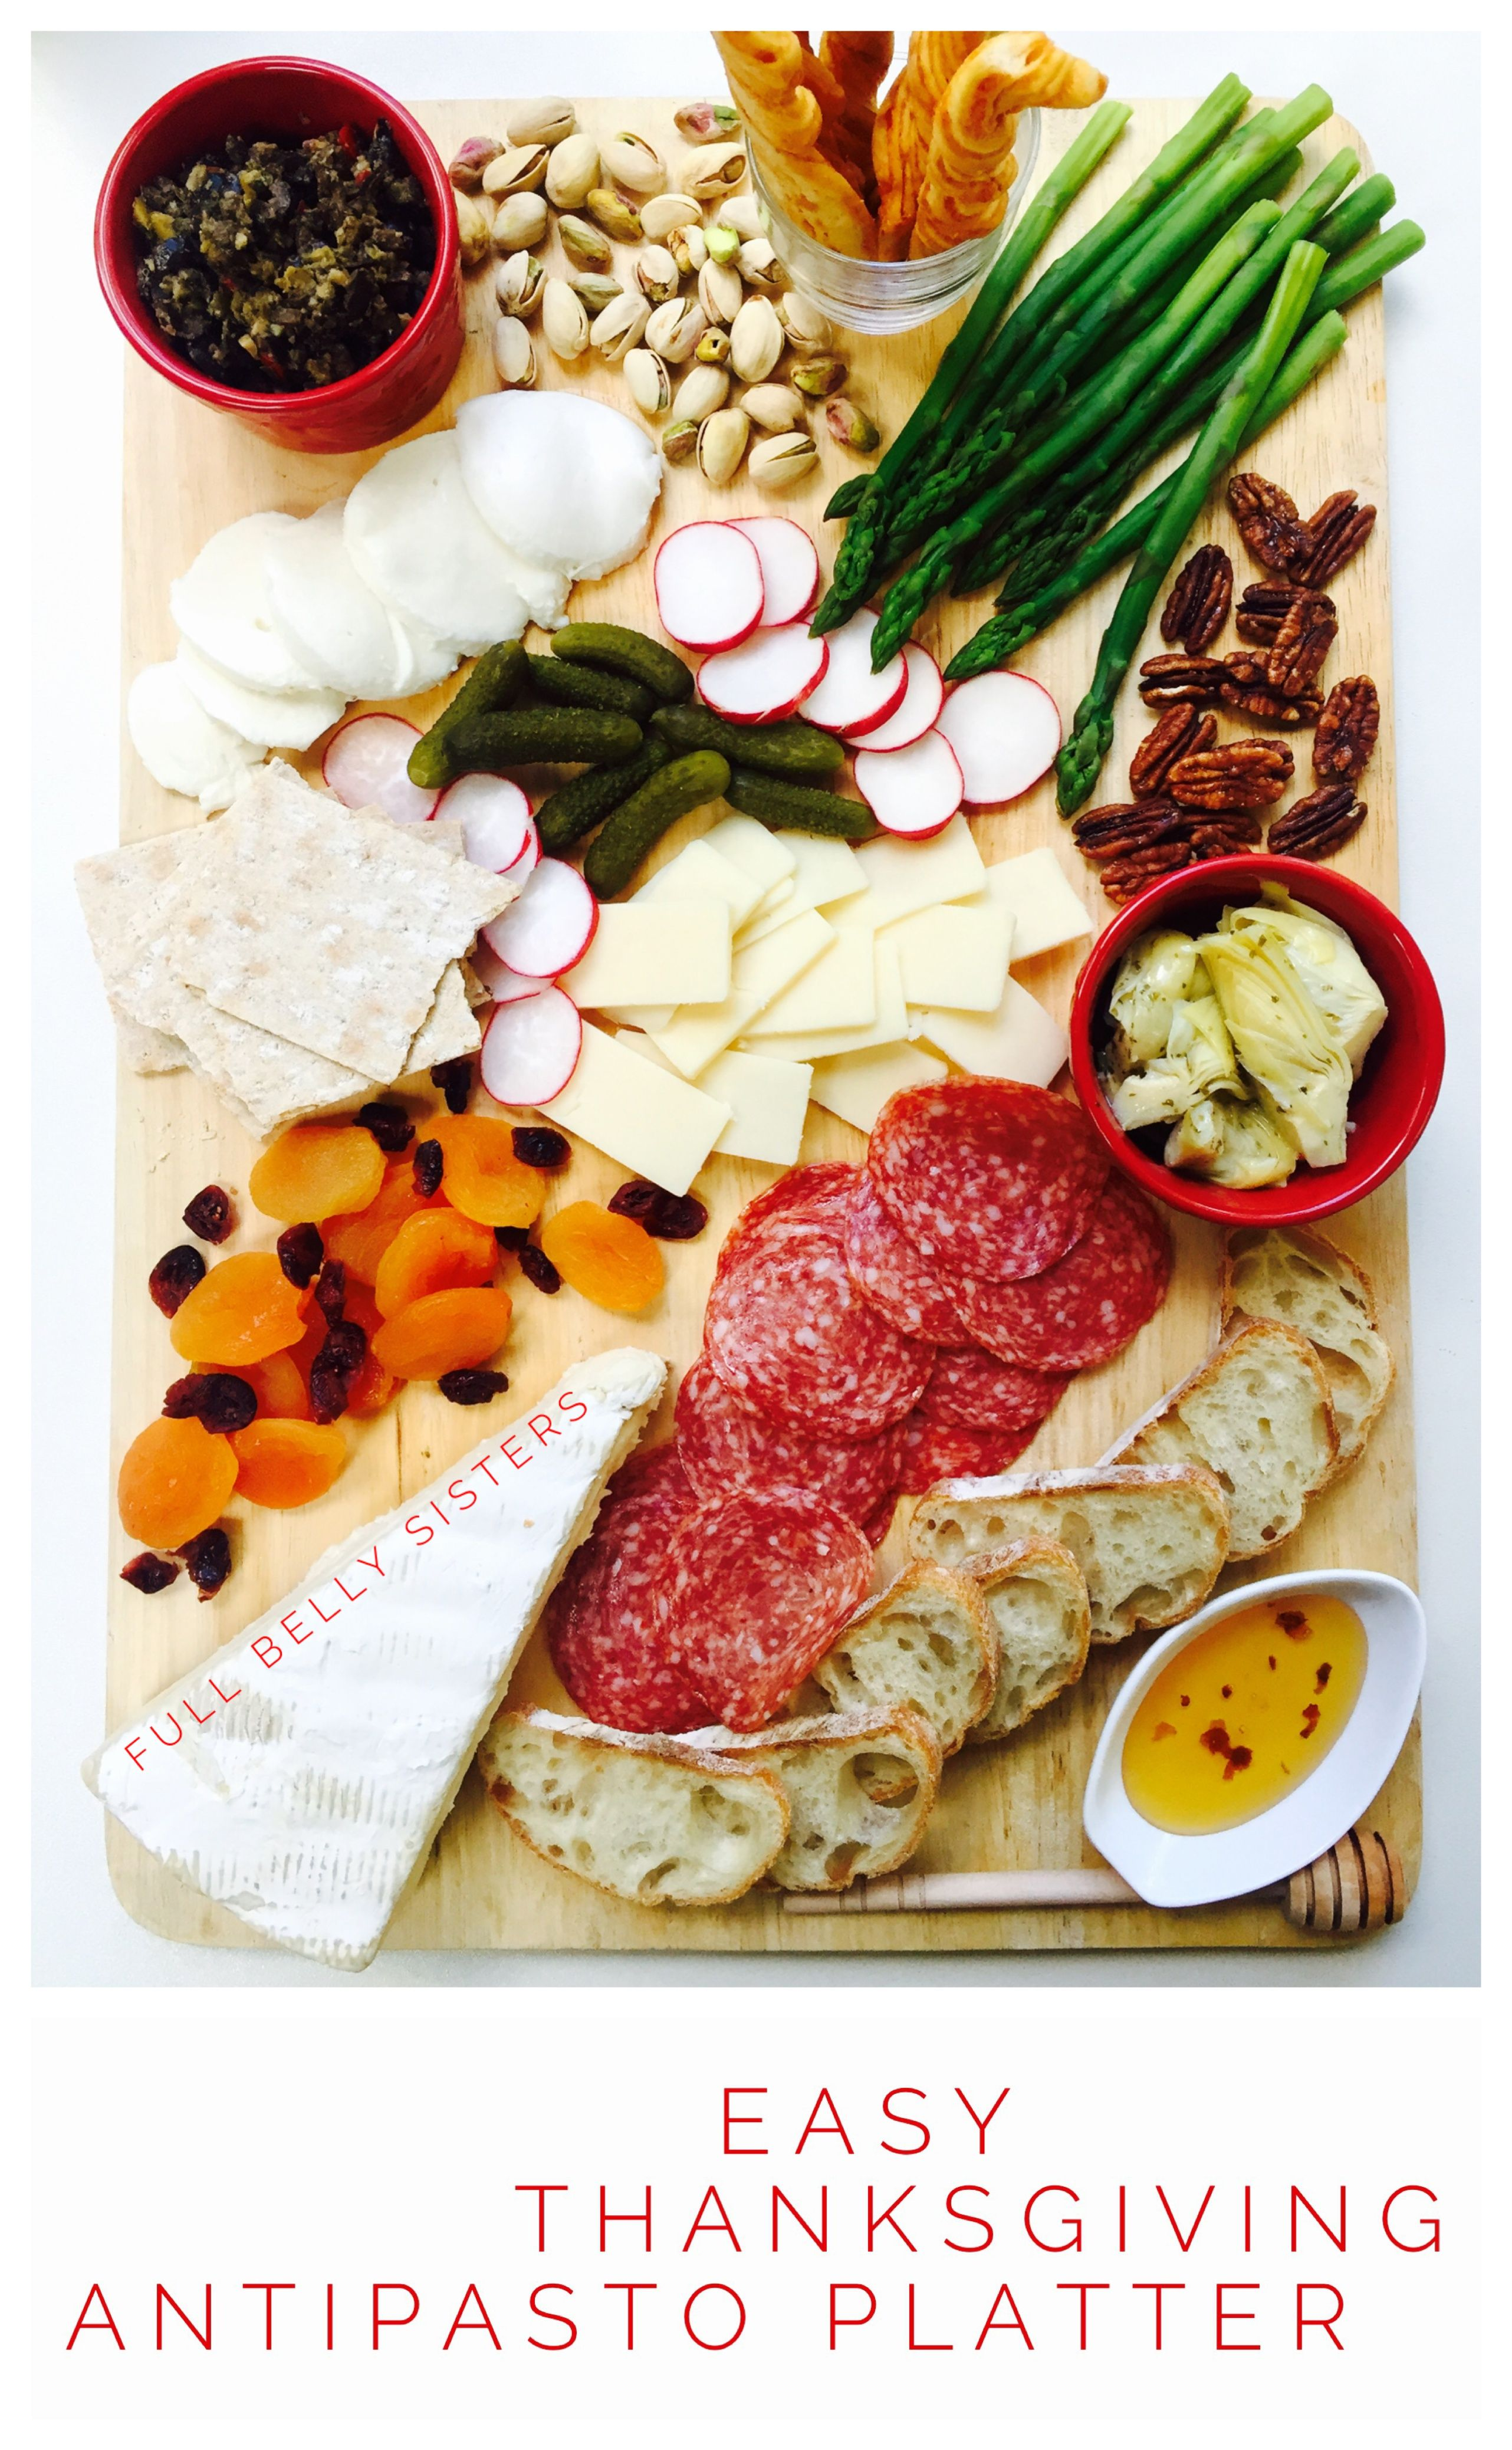 Budget Friendly Ways To Make A Beautiful Delicious And Easy Thanksgiving Antipasto Platter Antipasto Platter Healthy Holiday Recipes Antipasto